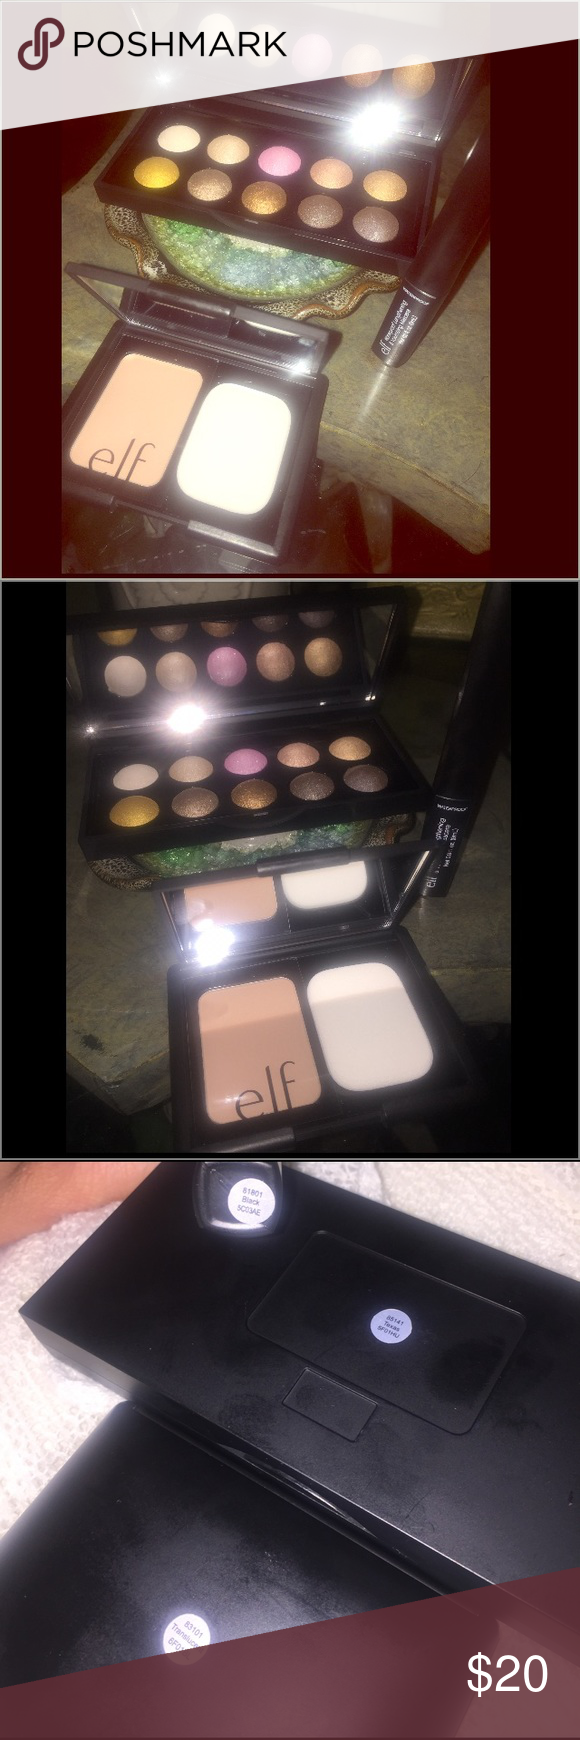 Eye Creams ELF Eye Palette Foundation  proof Mascara ELF Eyeshadow palette see sticker on back in photo 3 for name  Face Makeup with sponge see photo and Waterproof lengt...